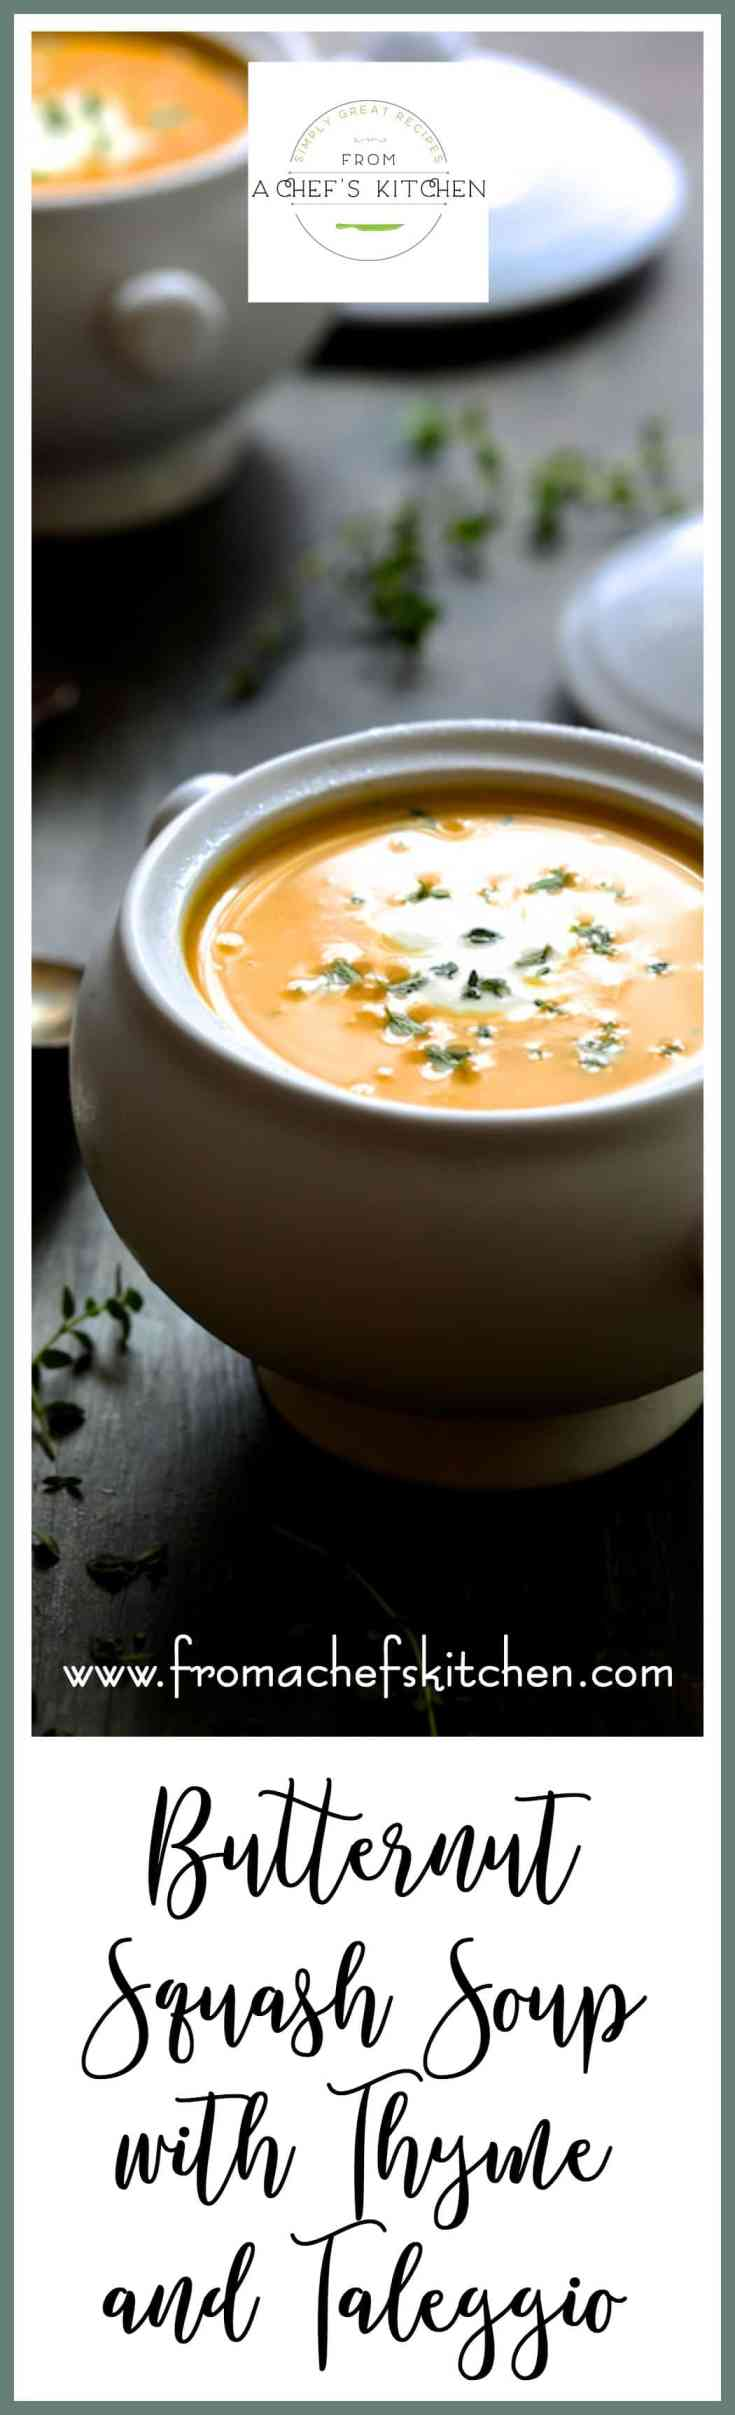 Butternut Squash Soup with Thyme and Taleggio is an elegant, rich and creamy soup that's perfect to serve this fall and winter! #butternutsquash #soup #thyme #taleggio